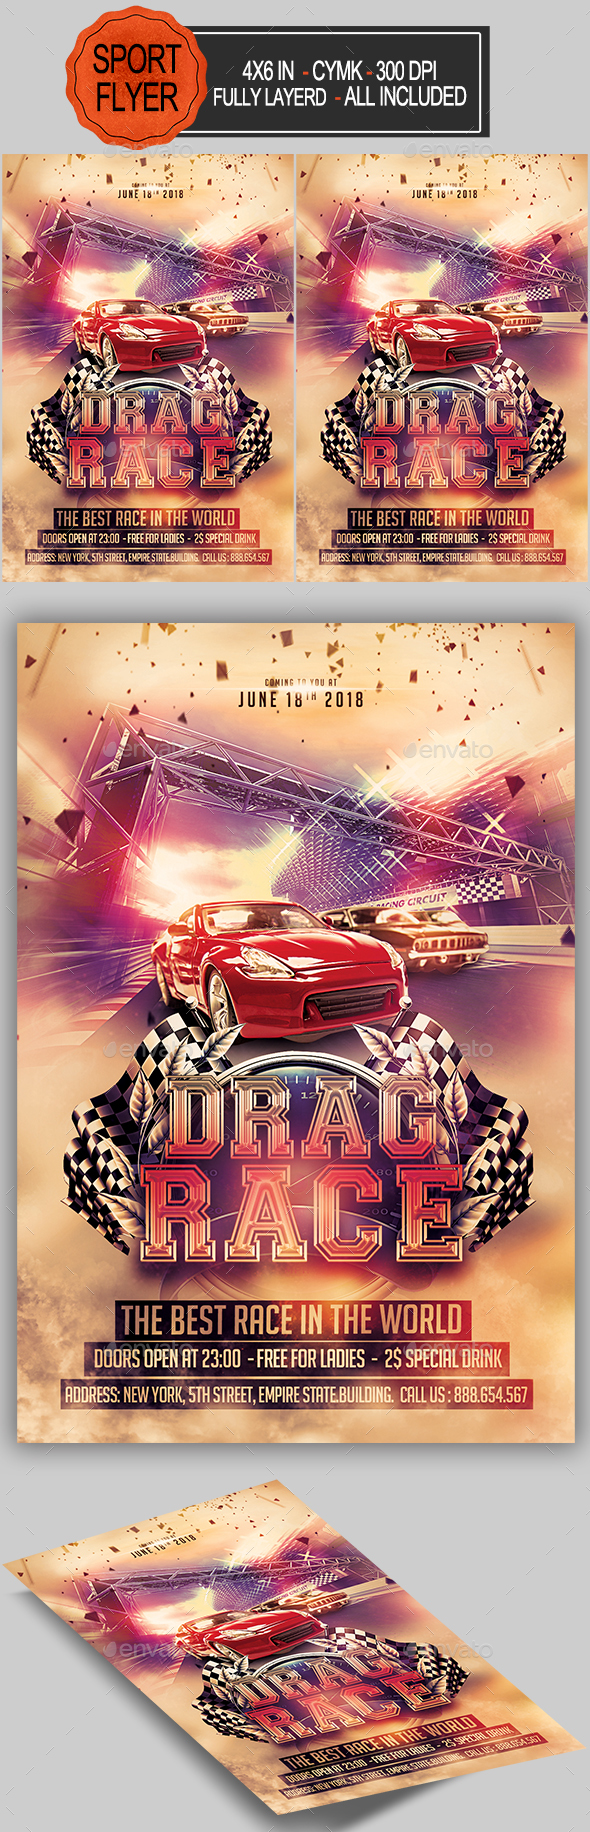 Drag Race Flyer - Sports Events